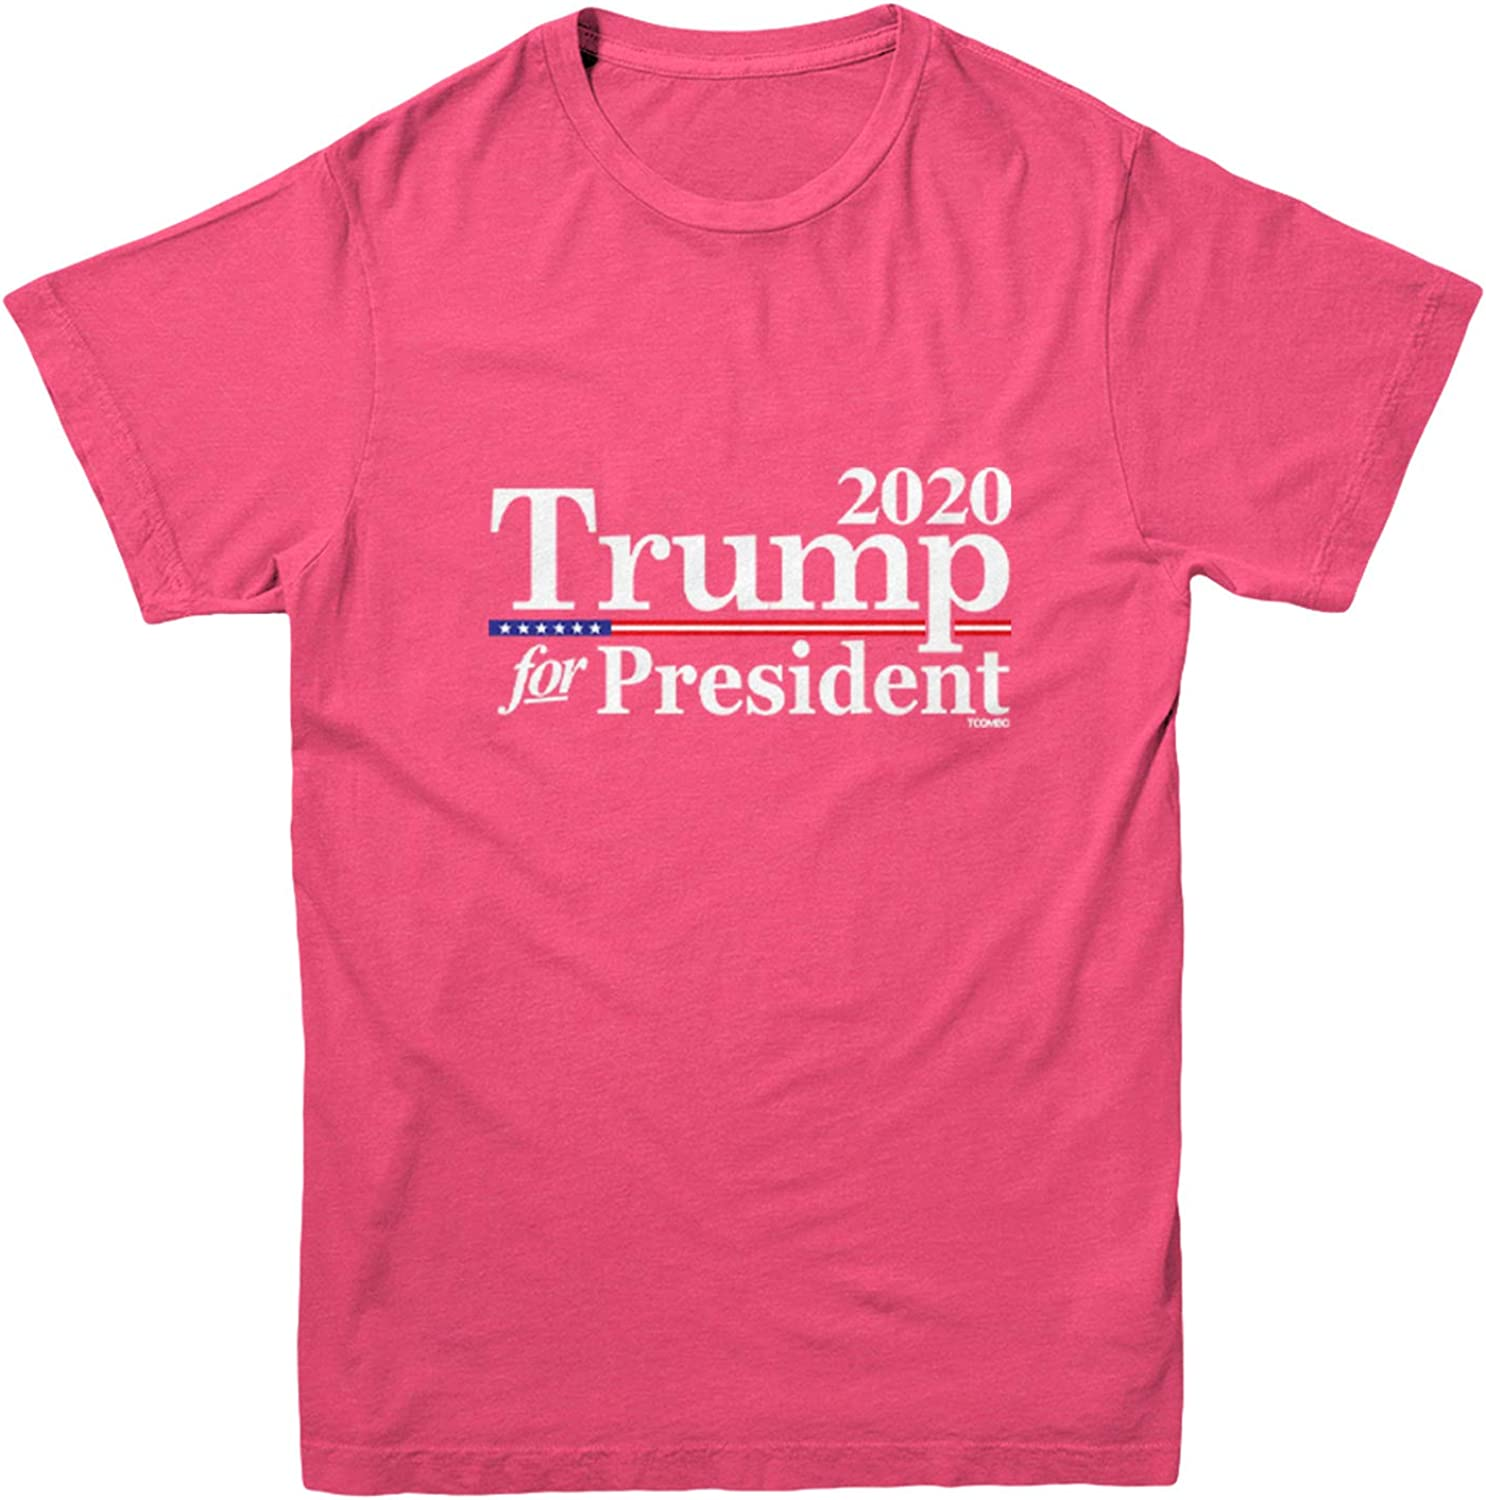 OFFicial shop Trump for President - Selling and selling Youth 45 MAGA T-Shirt